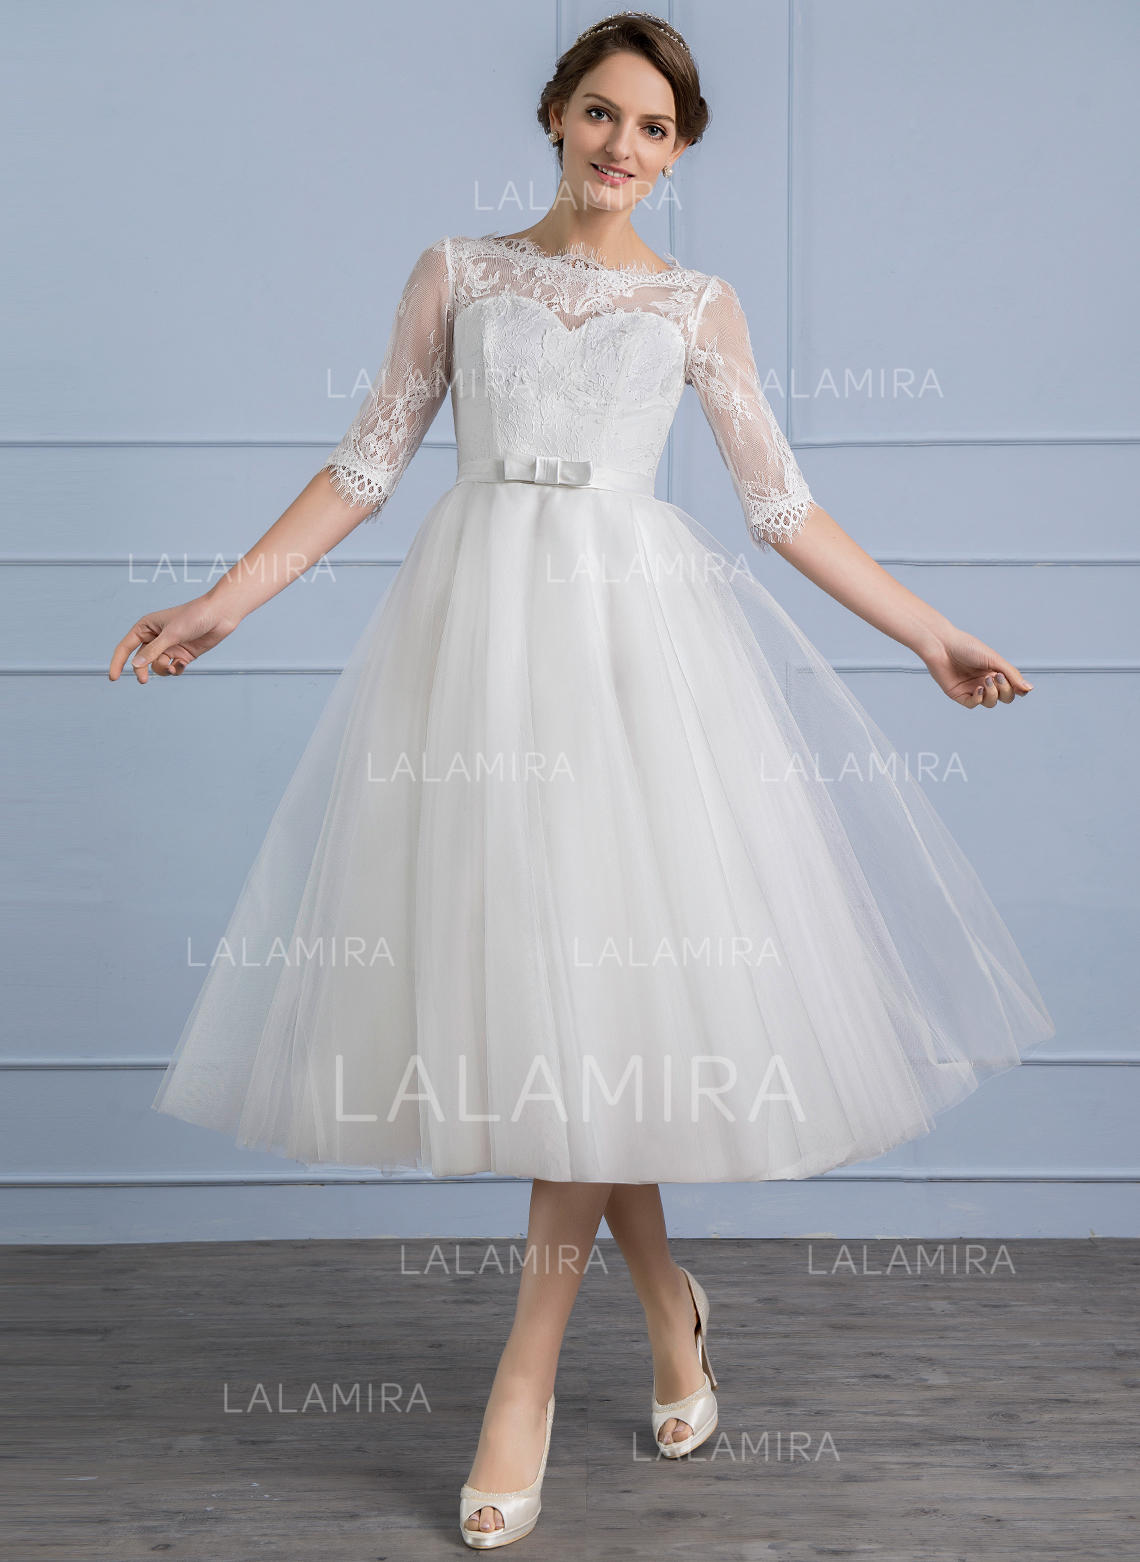 274fbd0c441 A-Line Princess Scoop Neck Tea-Length Tulle Lace Wedding Dress With Bow.  Loading zoom